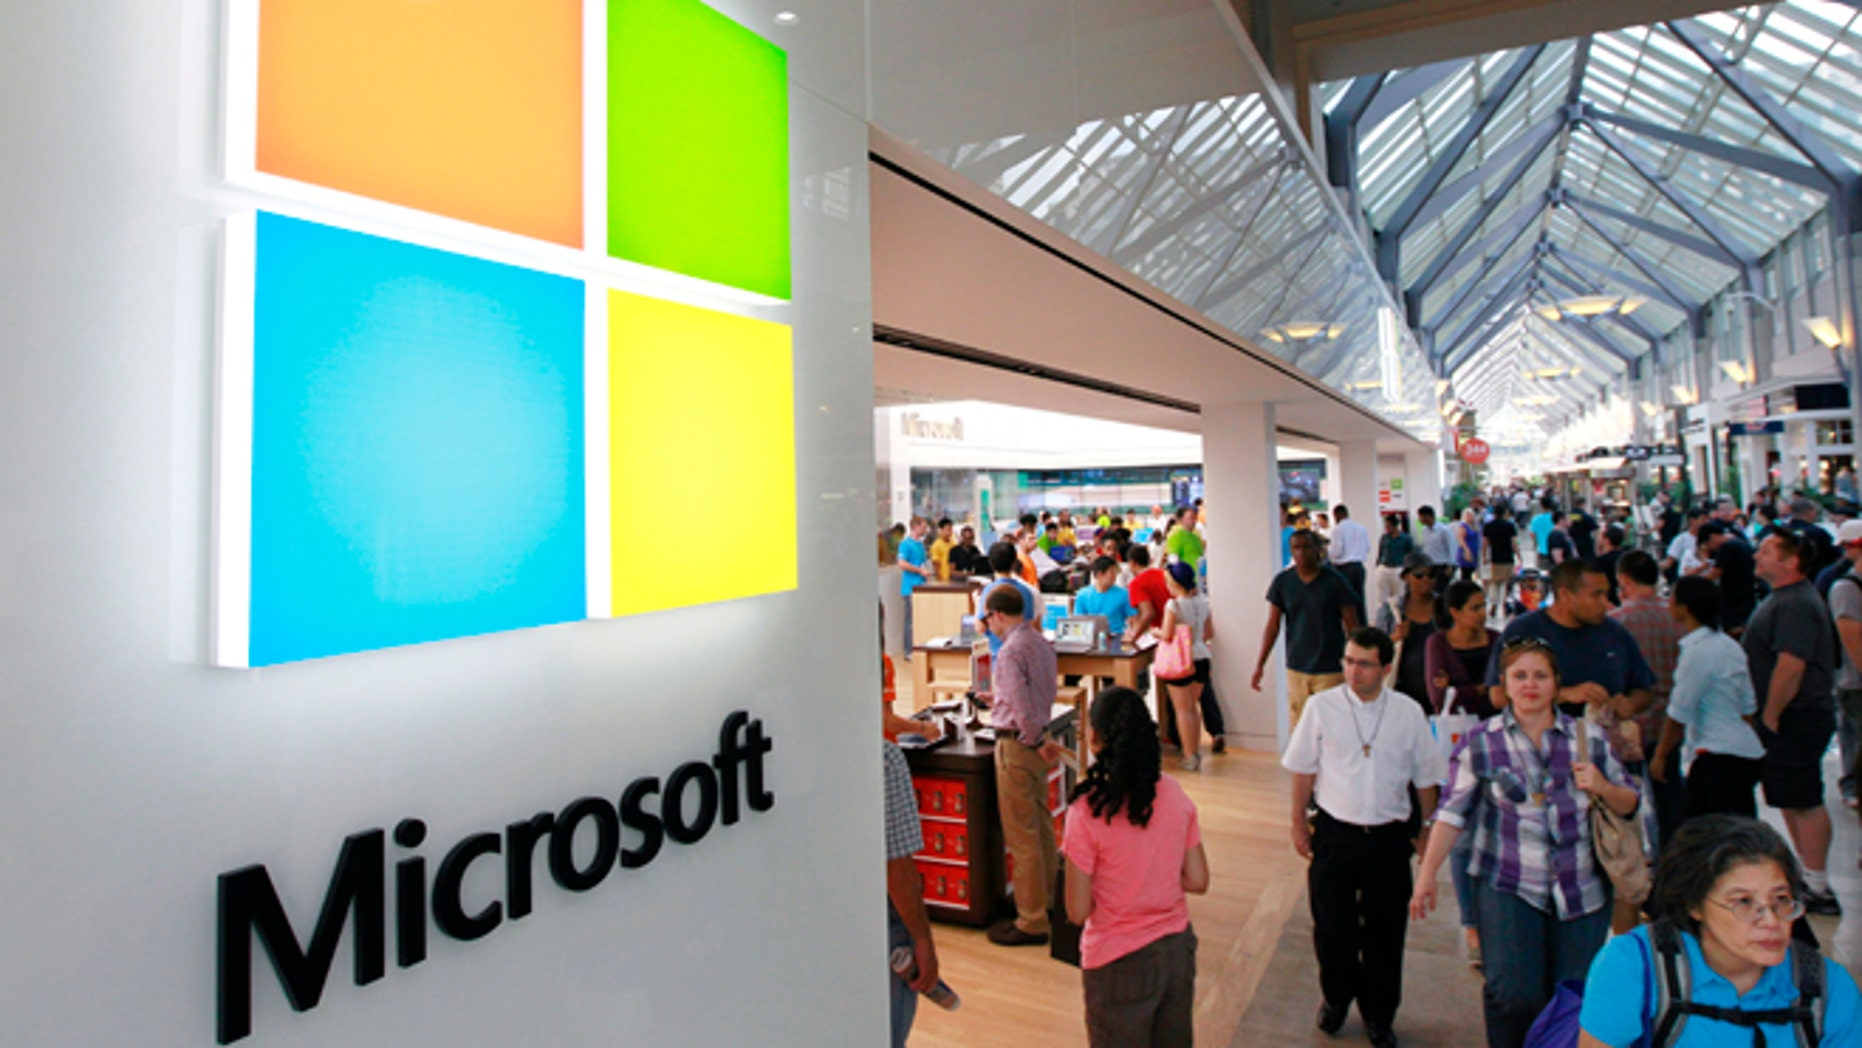 FILE photo: - In this Thursday, Aug. 23, 2012 file photo, the Microsoft Corp. logo, left, is seen on an exterior wall of a new Microsoft store inside the Prudential Center mall, in Boston.  (AP Photo/Steven Senne, File)